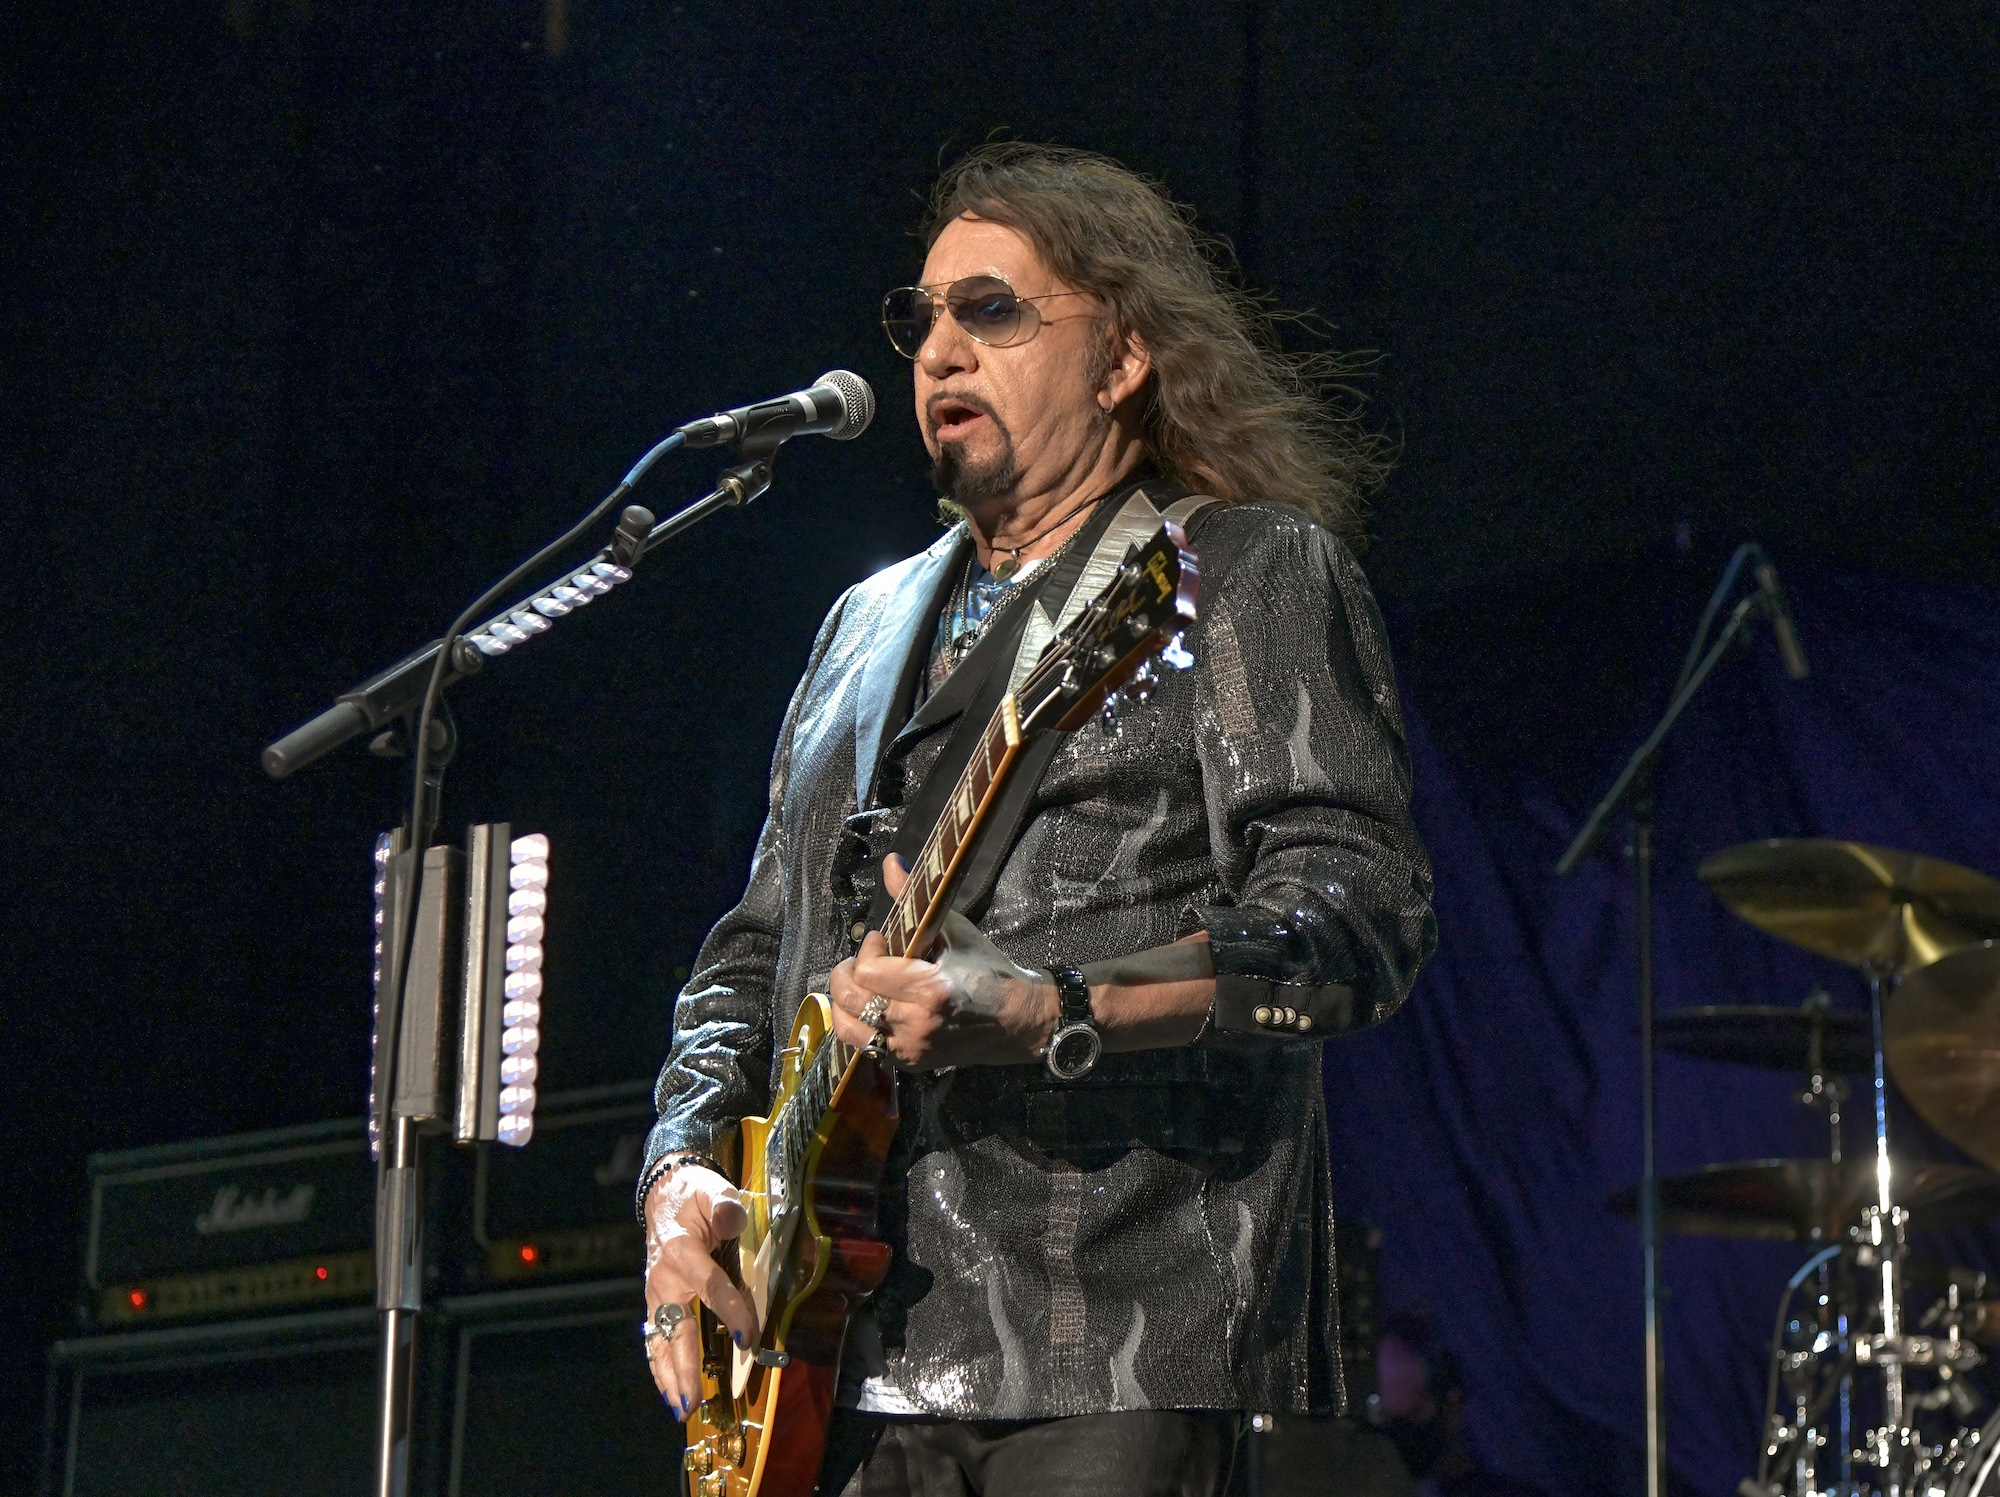 Ace Frehley Live at Huntington Bank Pavilion [GALLERY] 9